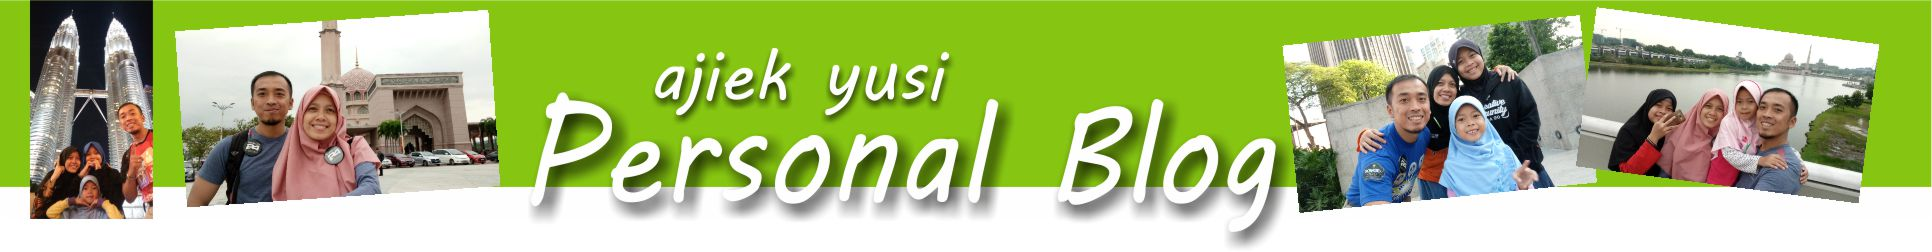 Personal Blog Konsultan Herbalife Indonesia